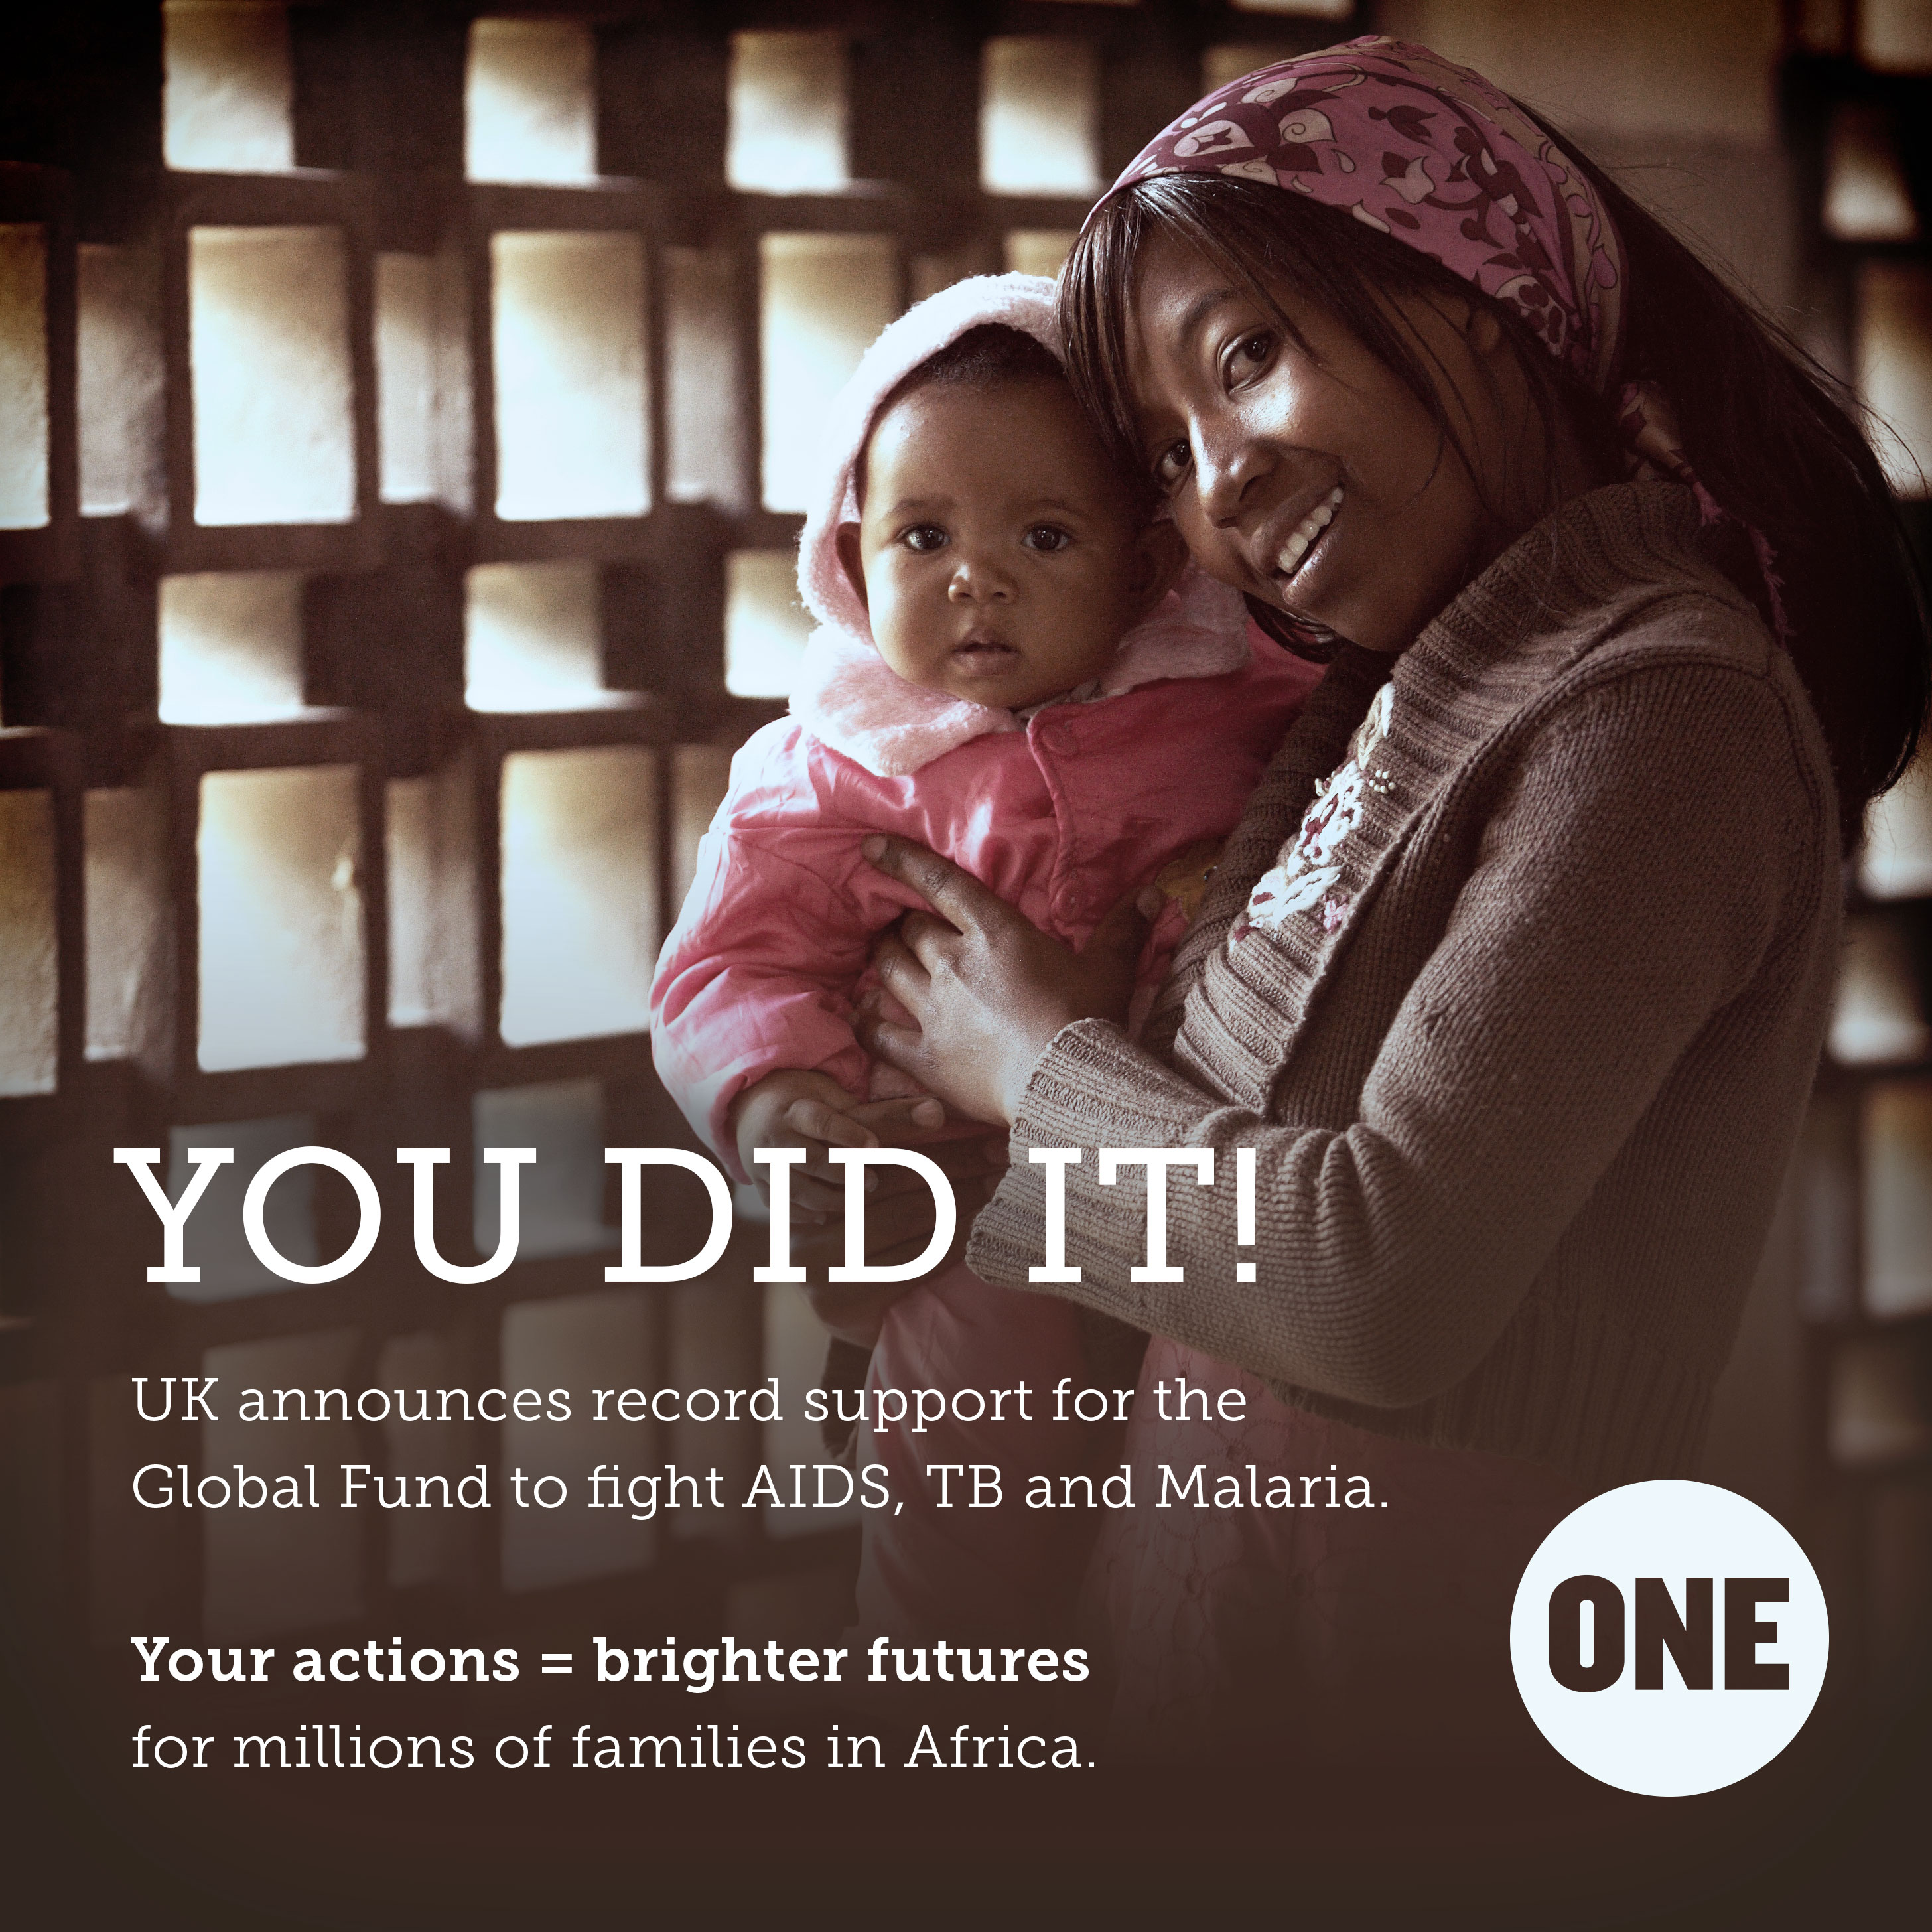 You asked the UK to step up their support for the Global Fund. They really did.